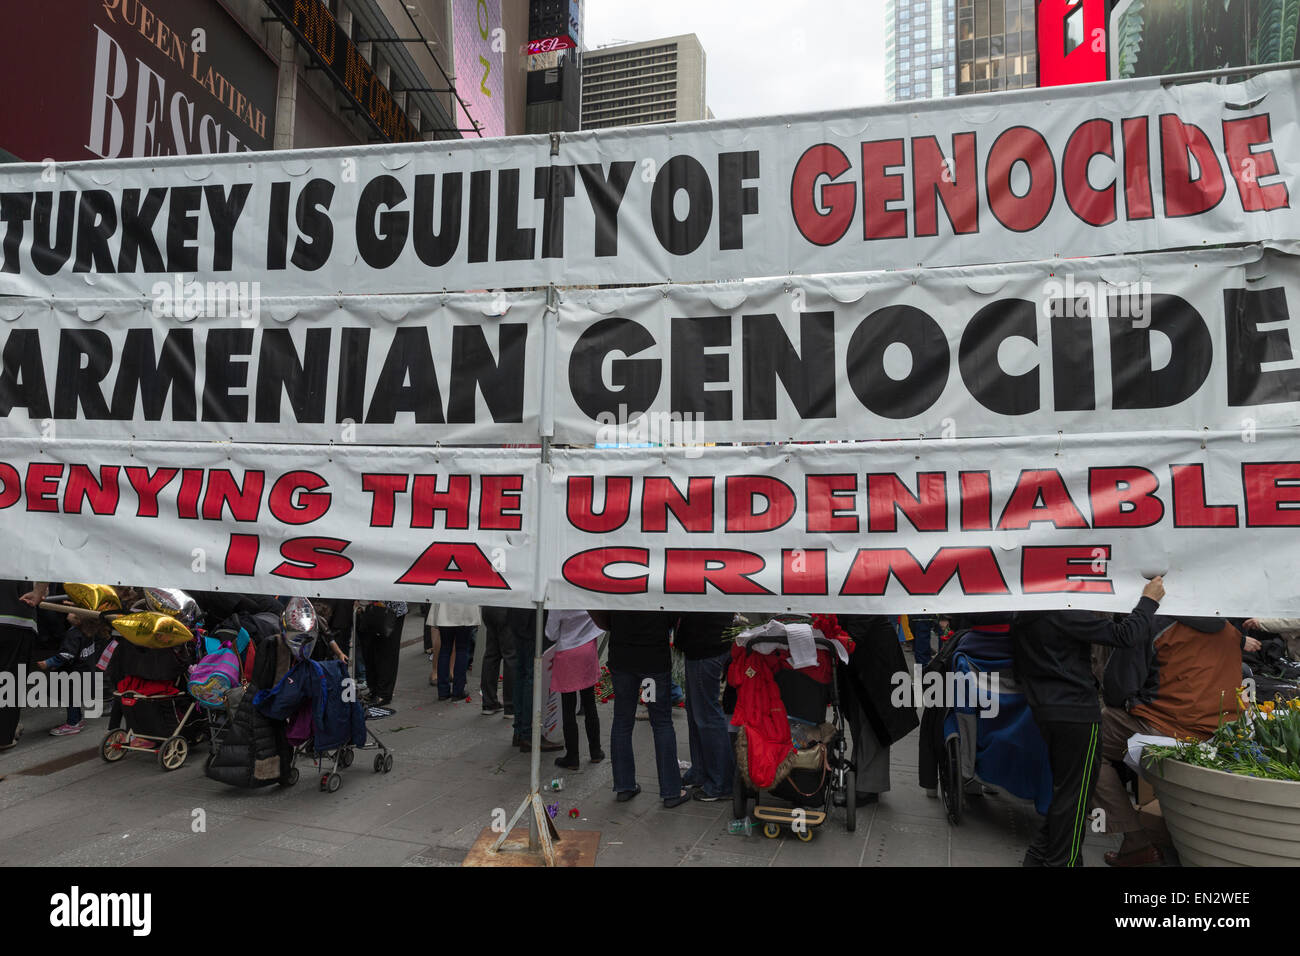 New York, NY - April 26, 2015: Thousands rally in Manhattan Times Square to mark centennial of the deaths of 1.5 - Stock Image